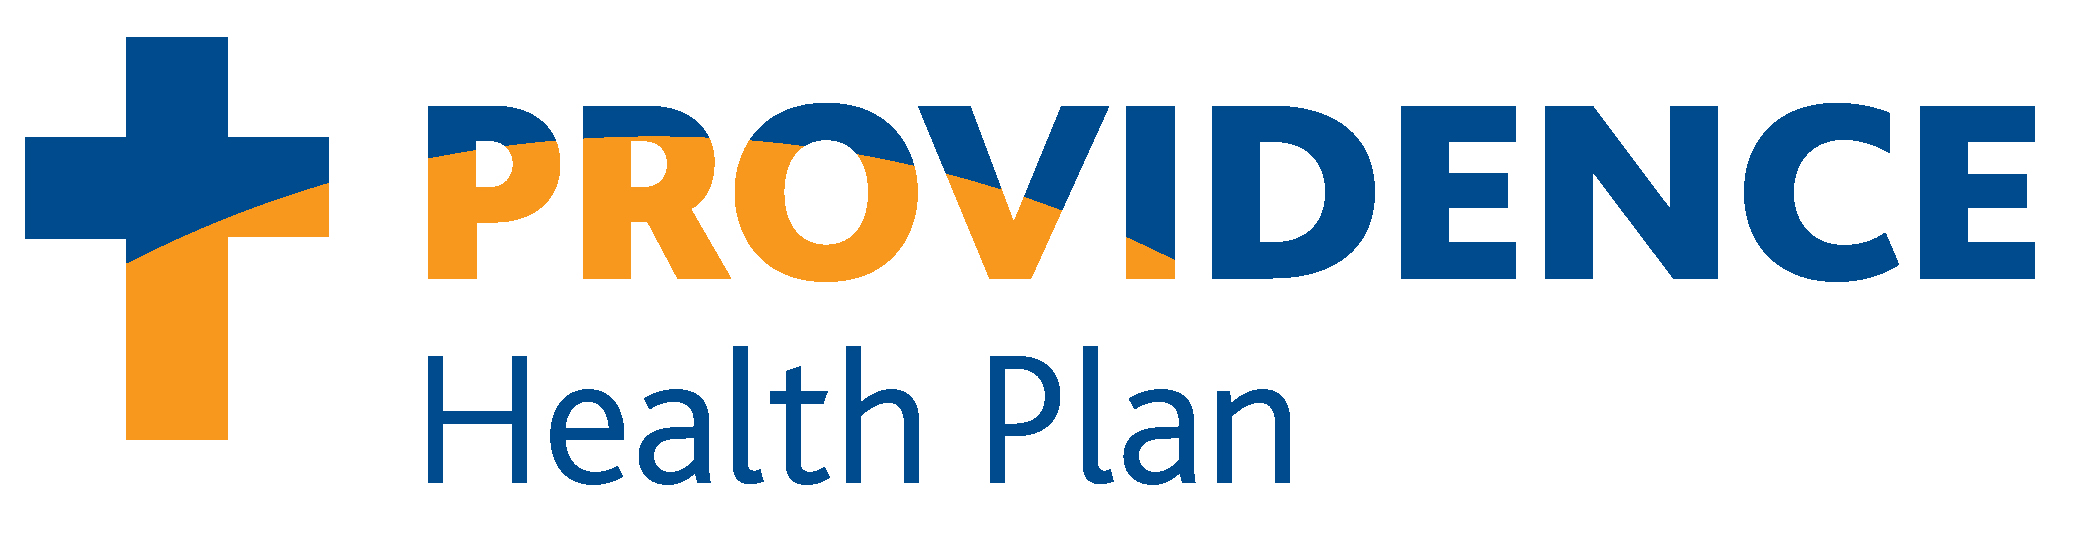 Providence Health Member Instructions